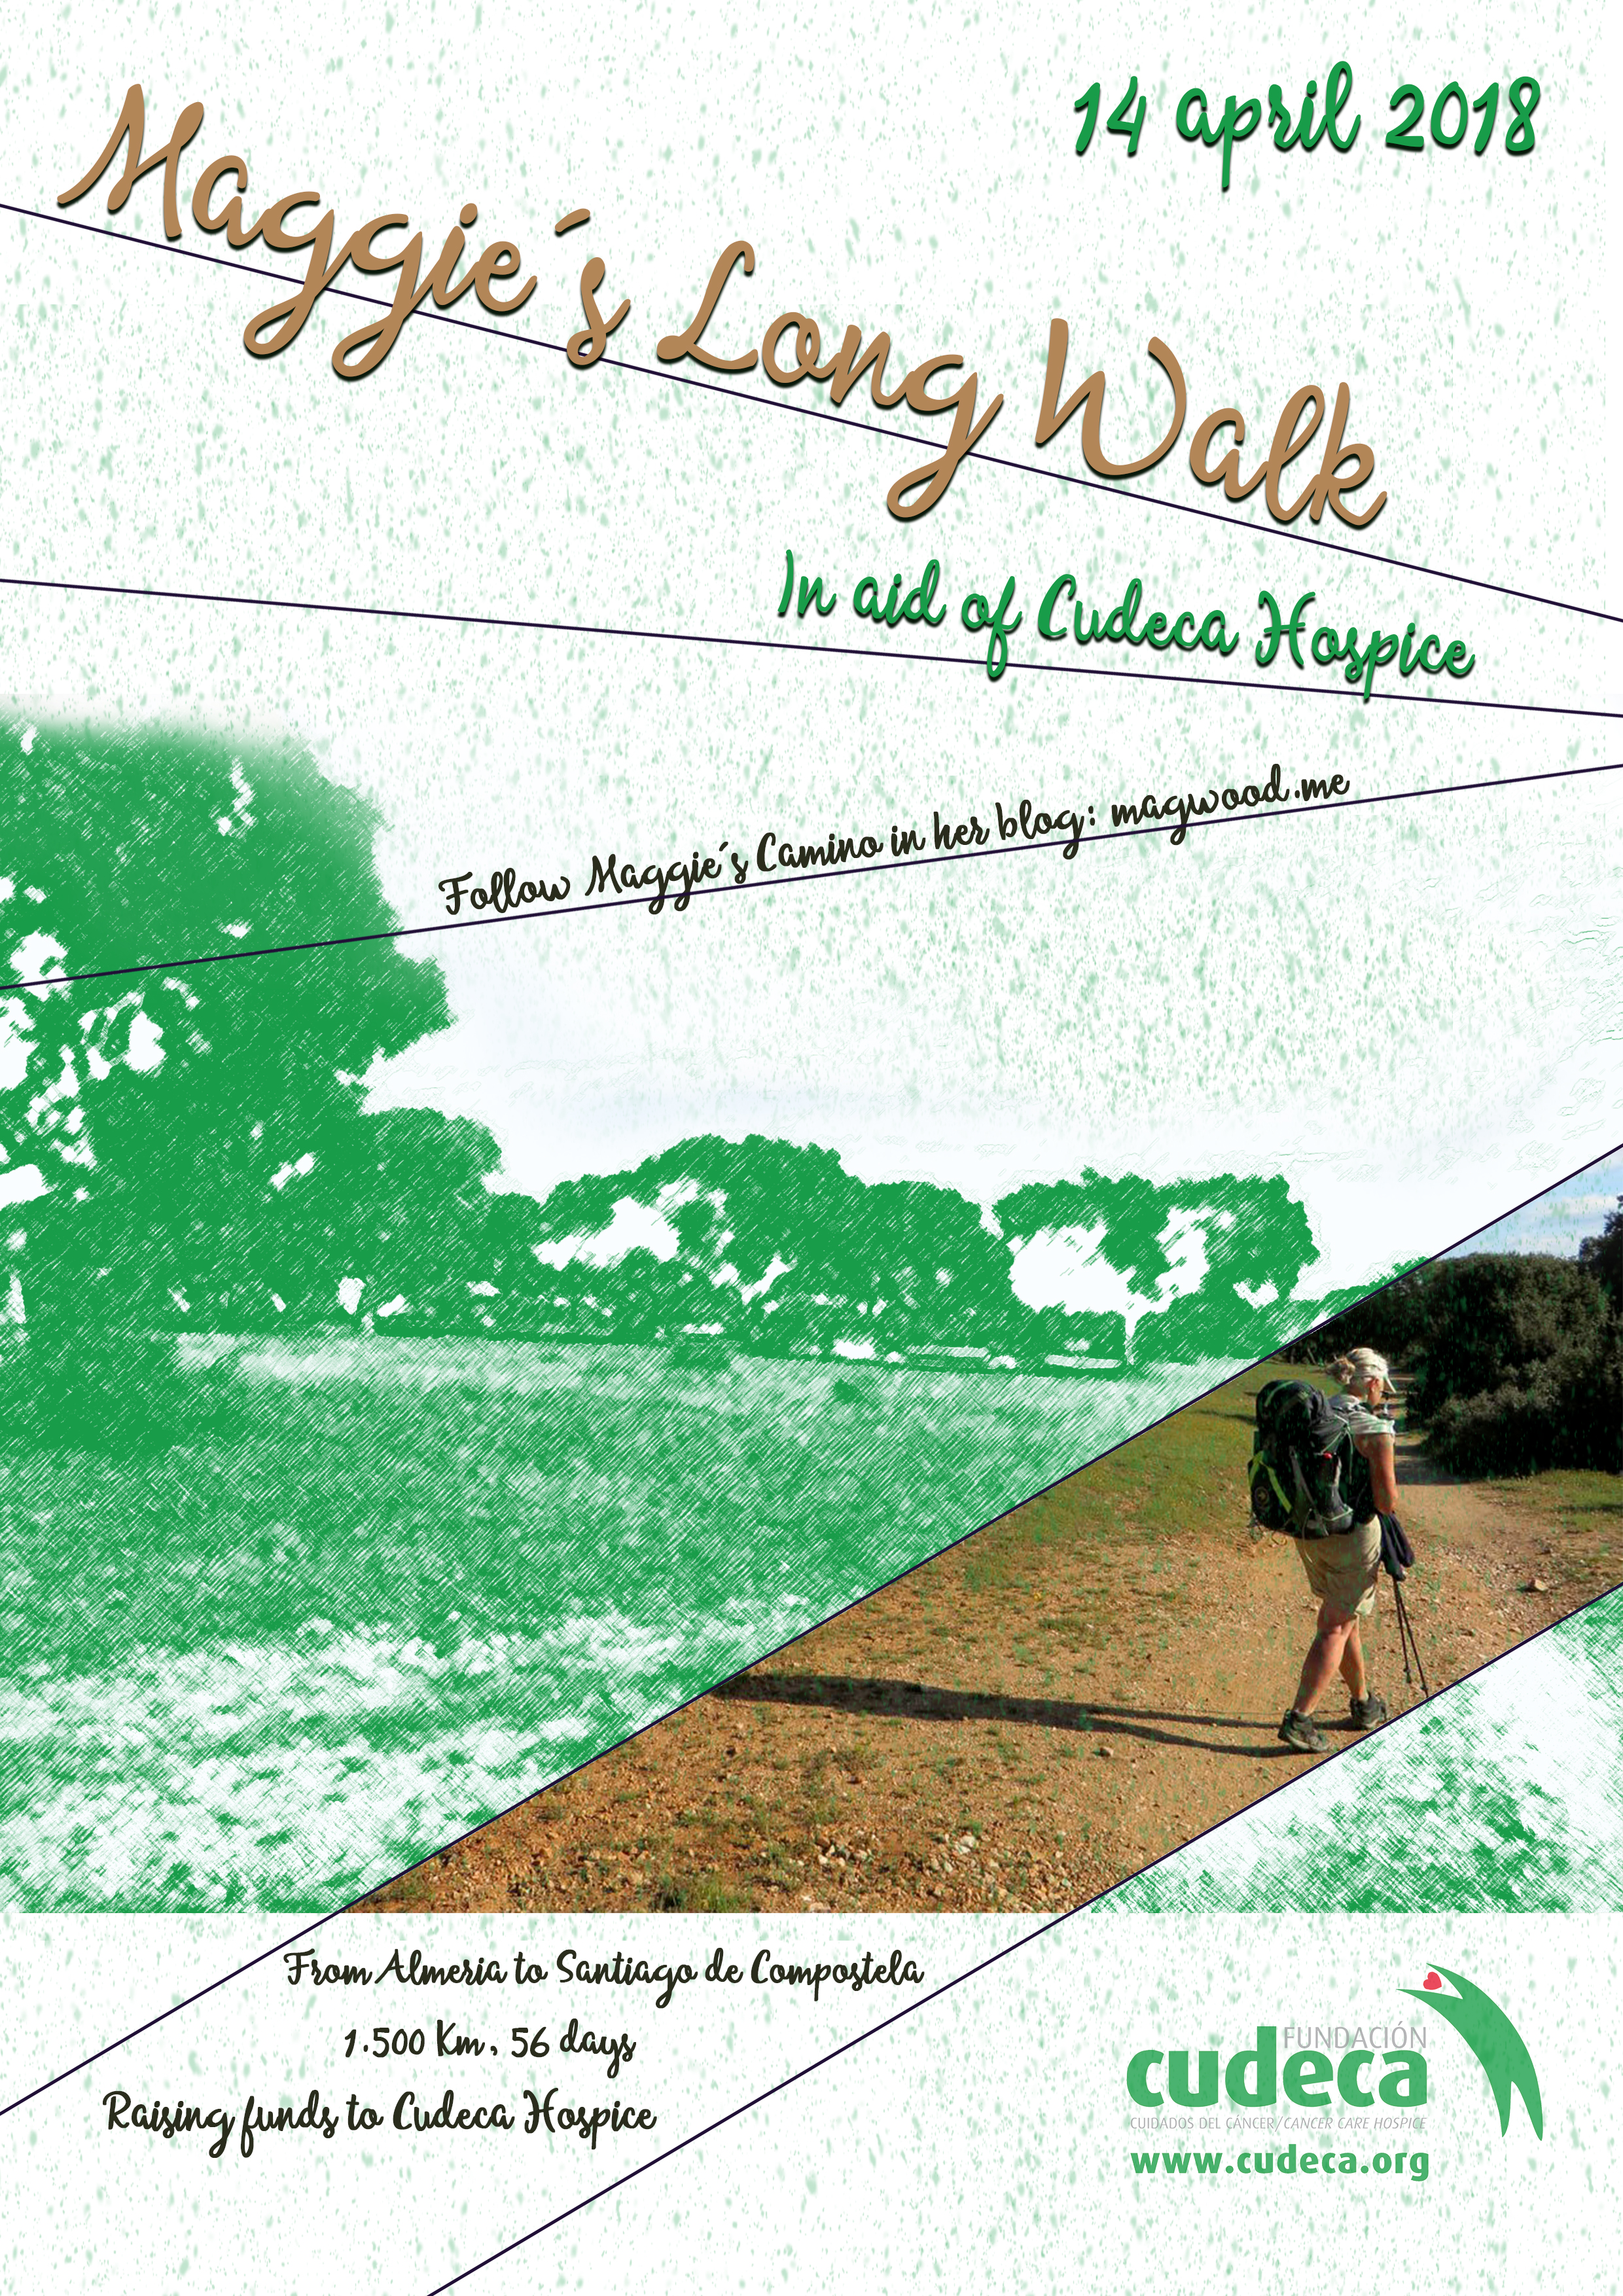 Maggie´s 6th Charity Challenge – Camino de Santiago for CUDECA